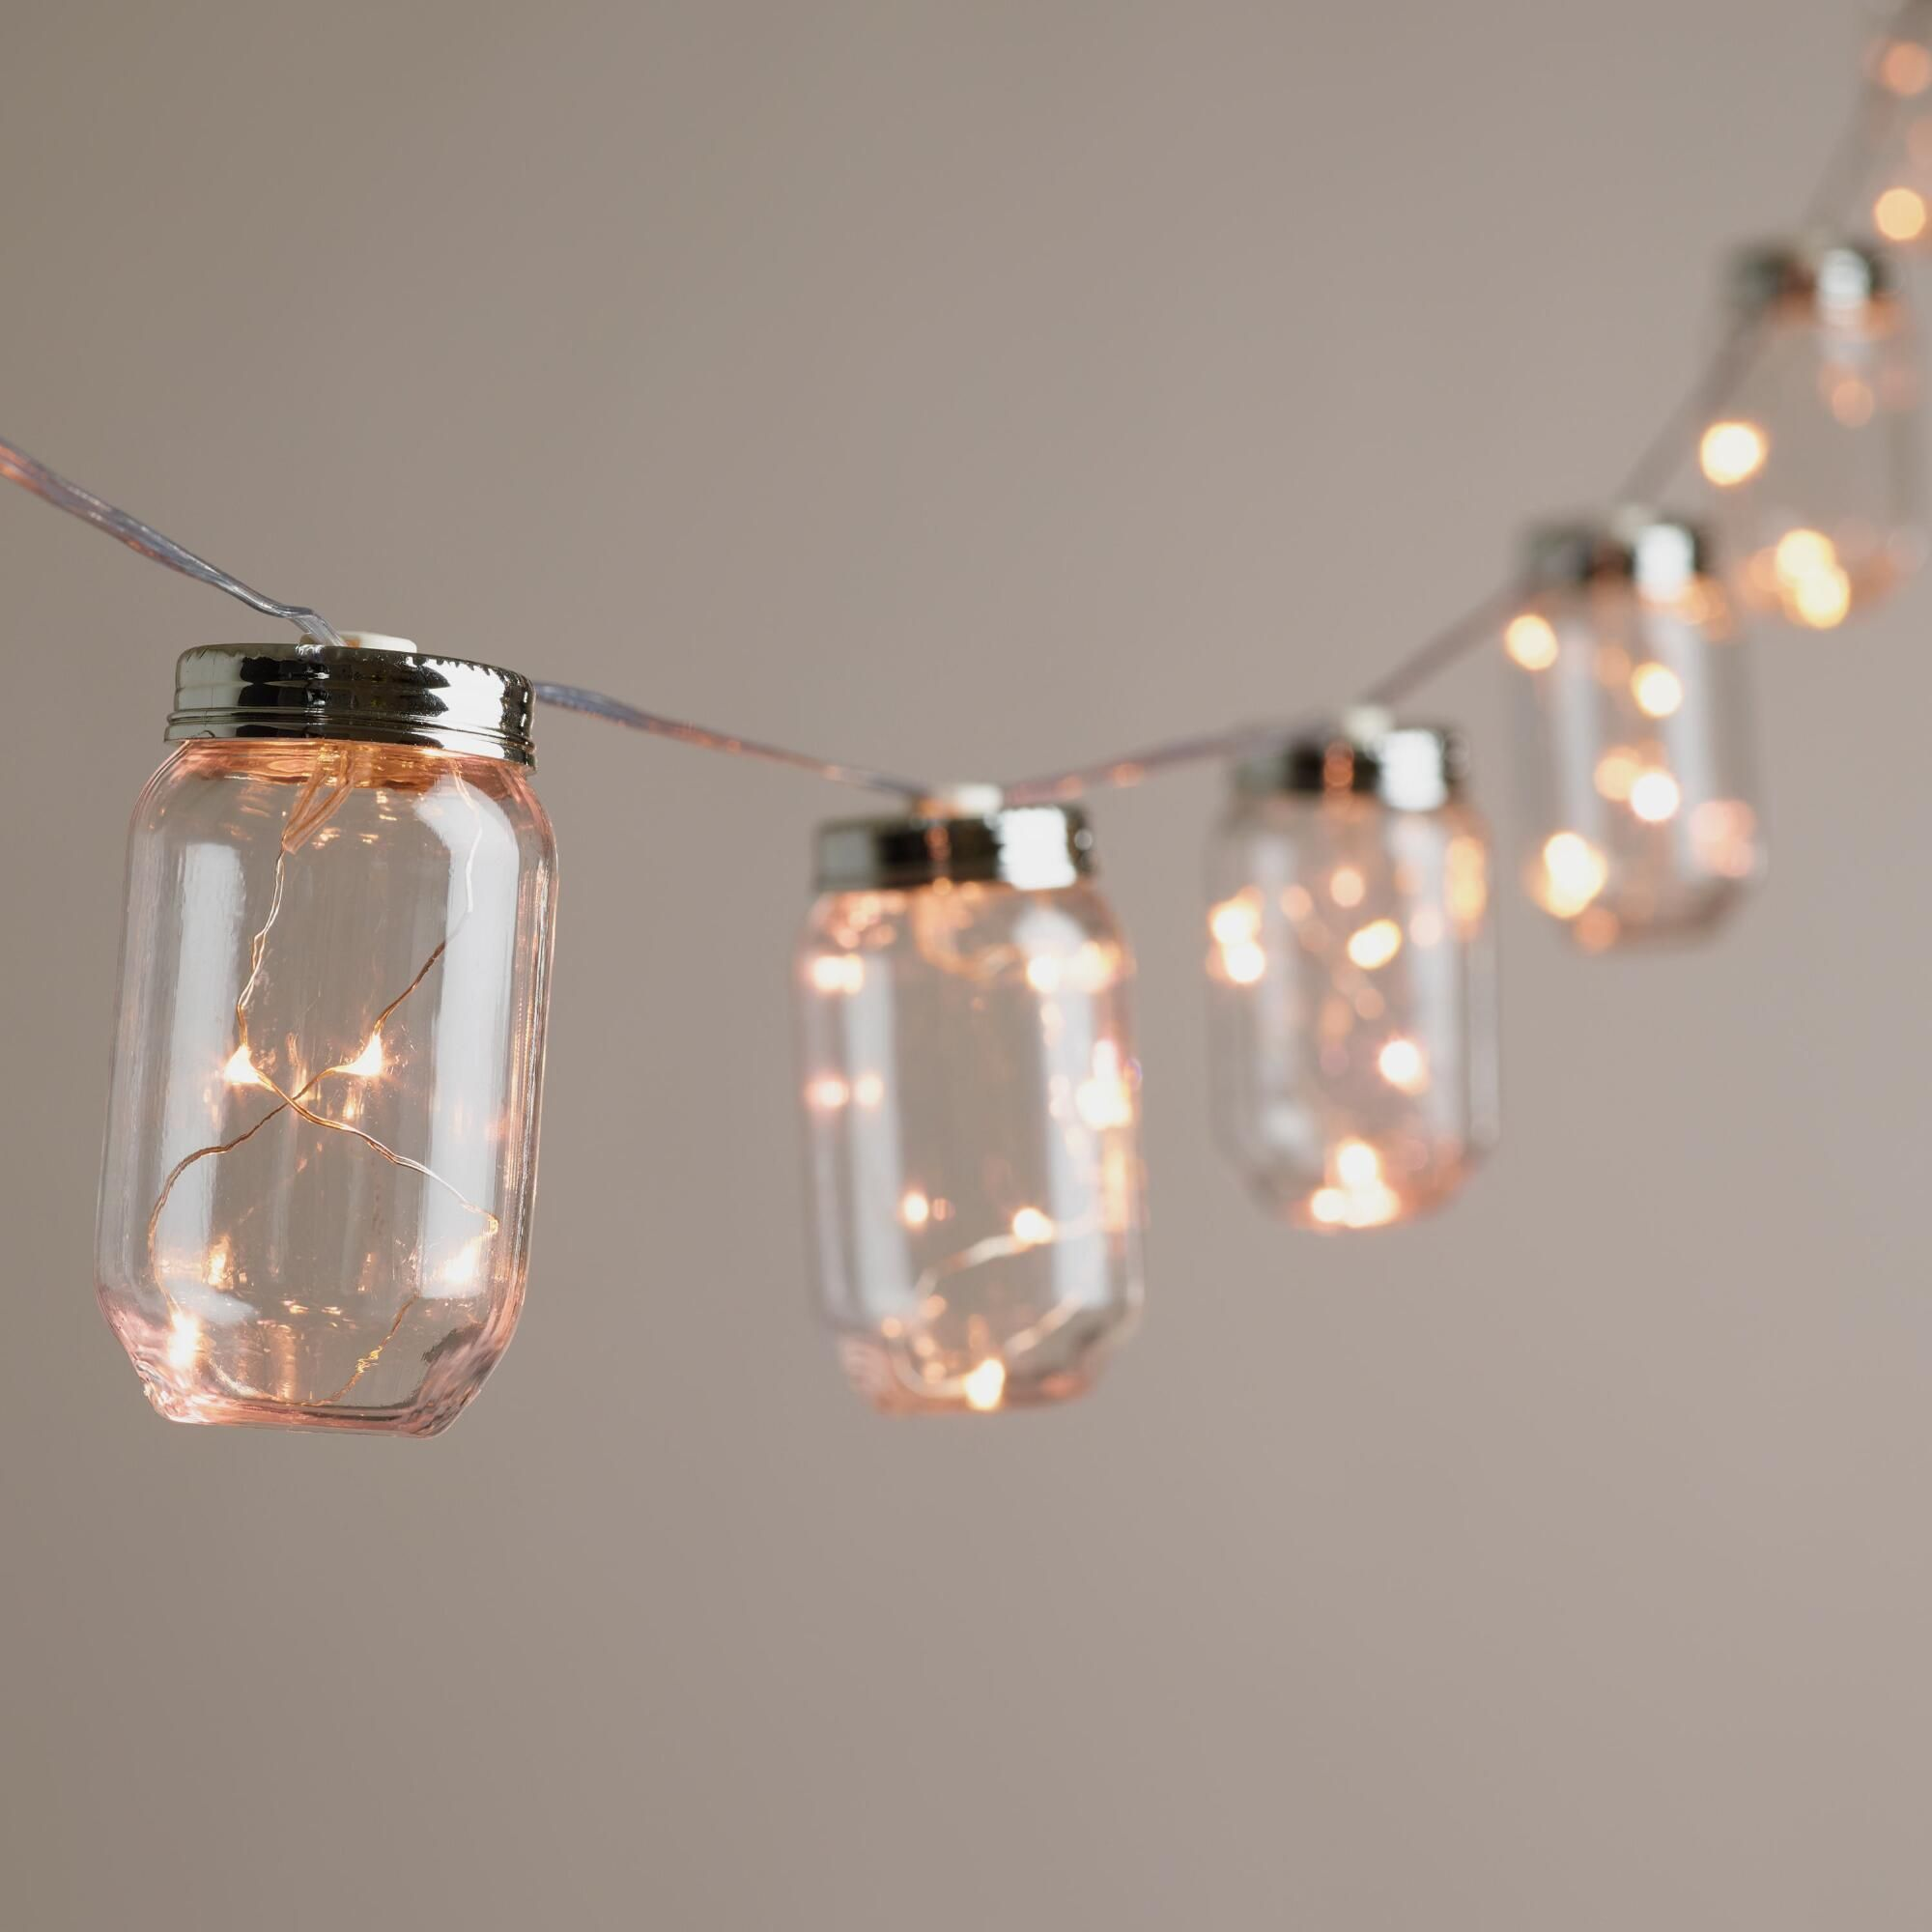 String Lights With Battery: Mason Jar Firefly 10 Bulb Battery Operated String Lights